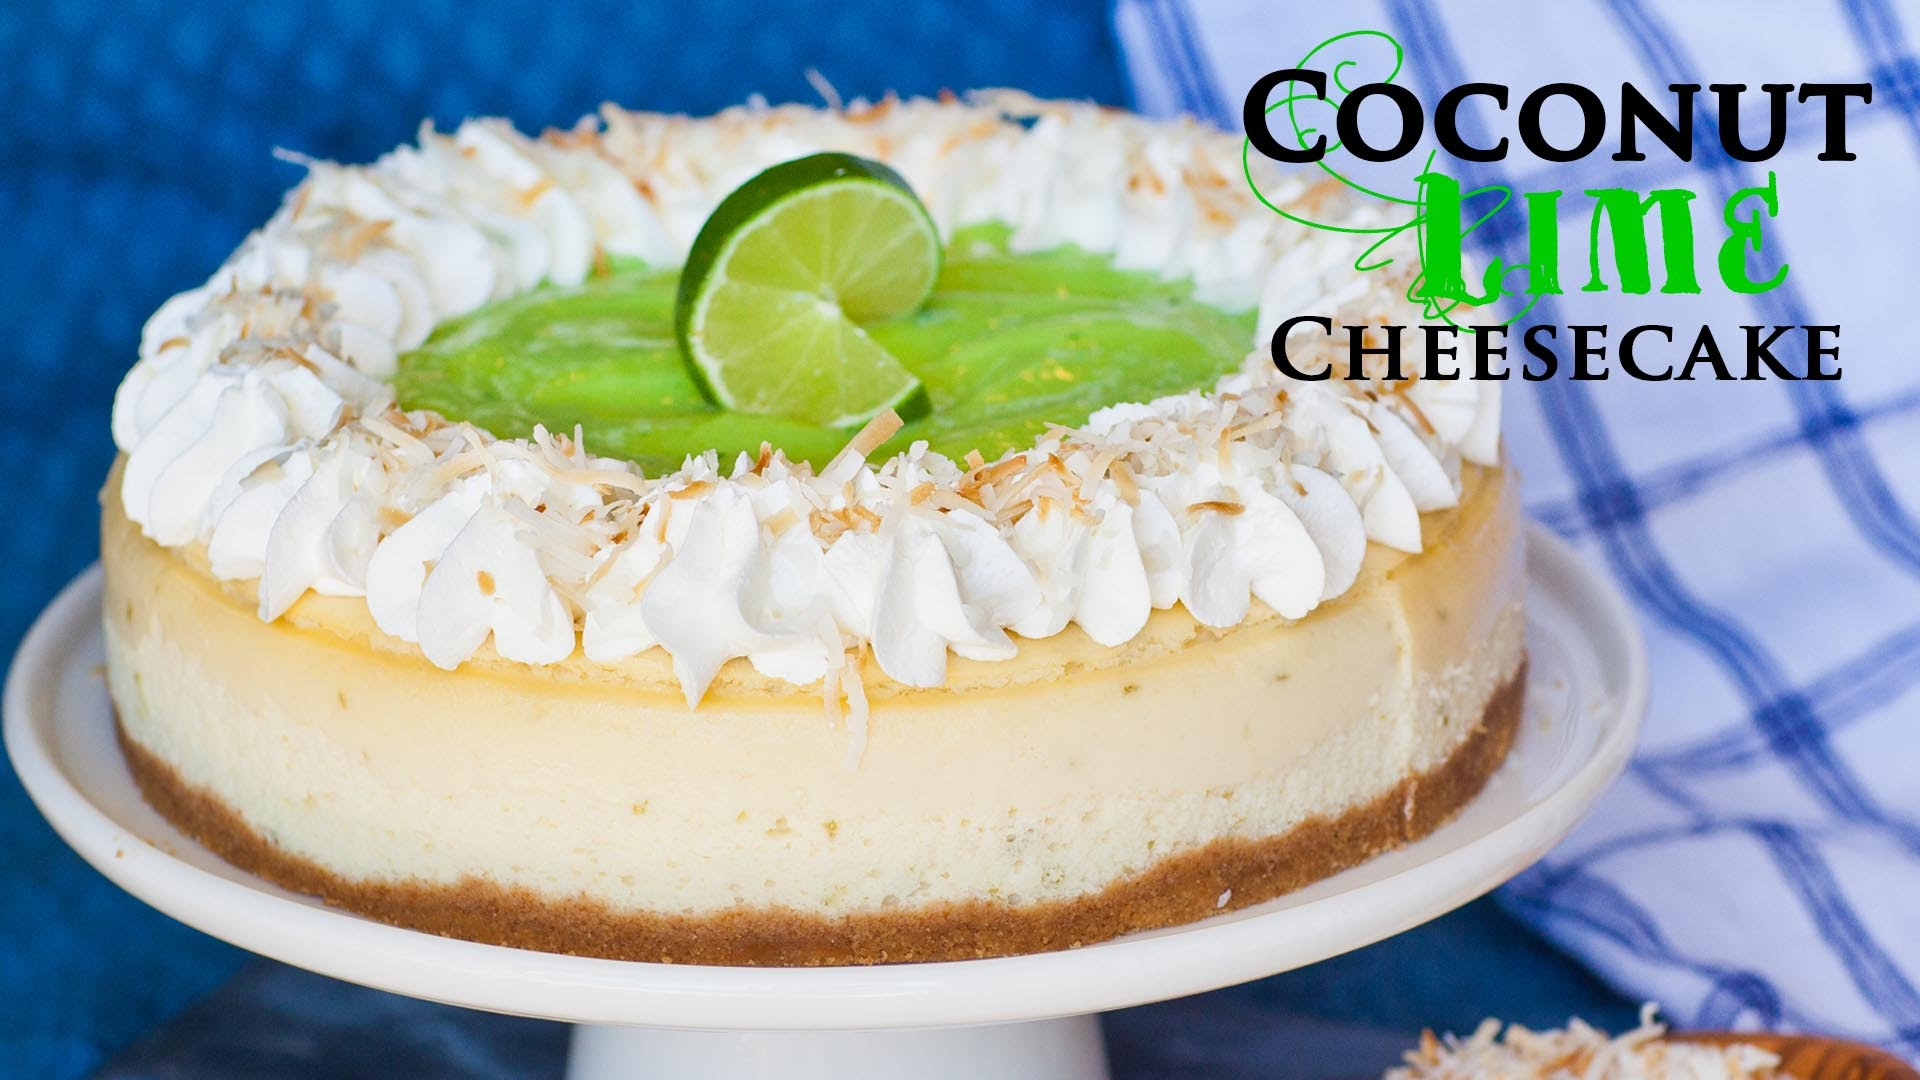 Perfect Combination Of Sweet And Sour With This Coconut Lime Cheesecake